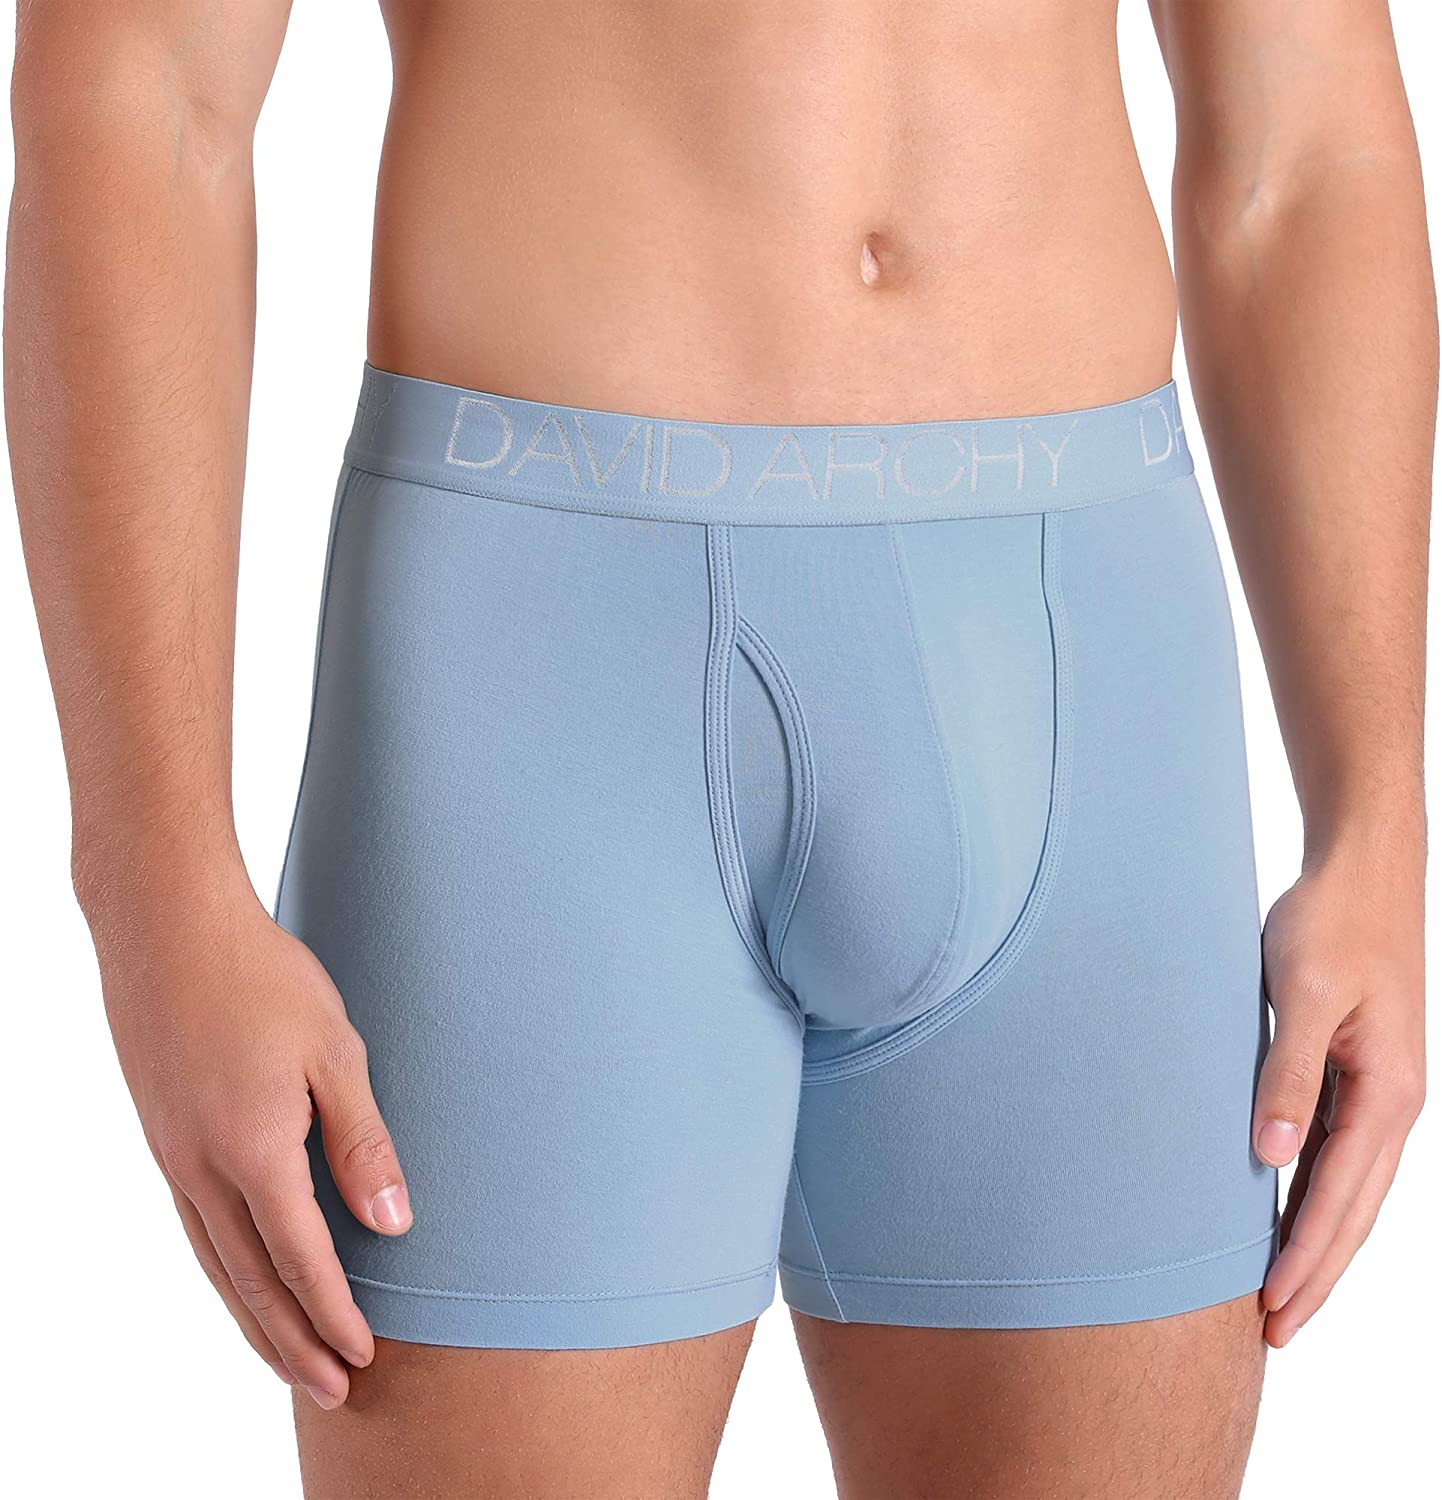 DAVID ARCHY Mens Underwear Breathable Boxer Briefs Bamboo Rayon Trunks in 3 or 4 Pack